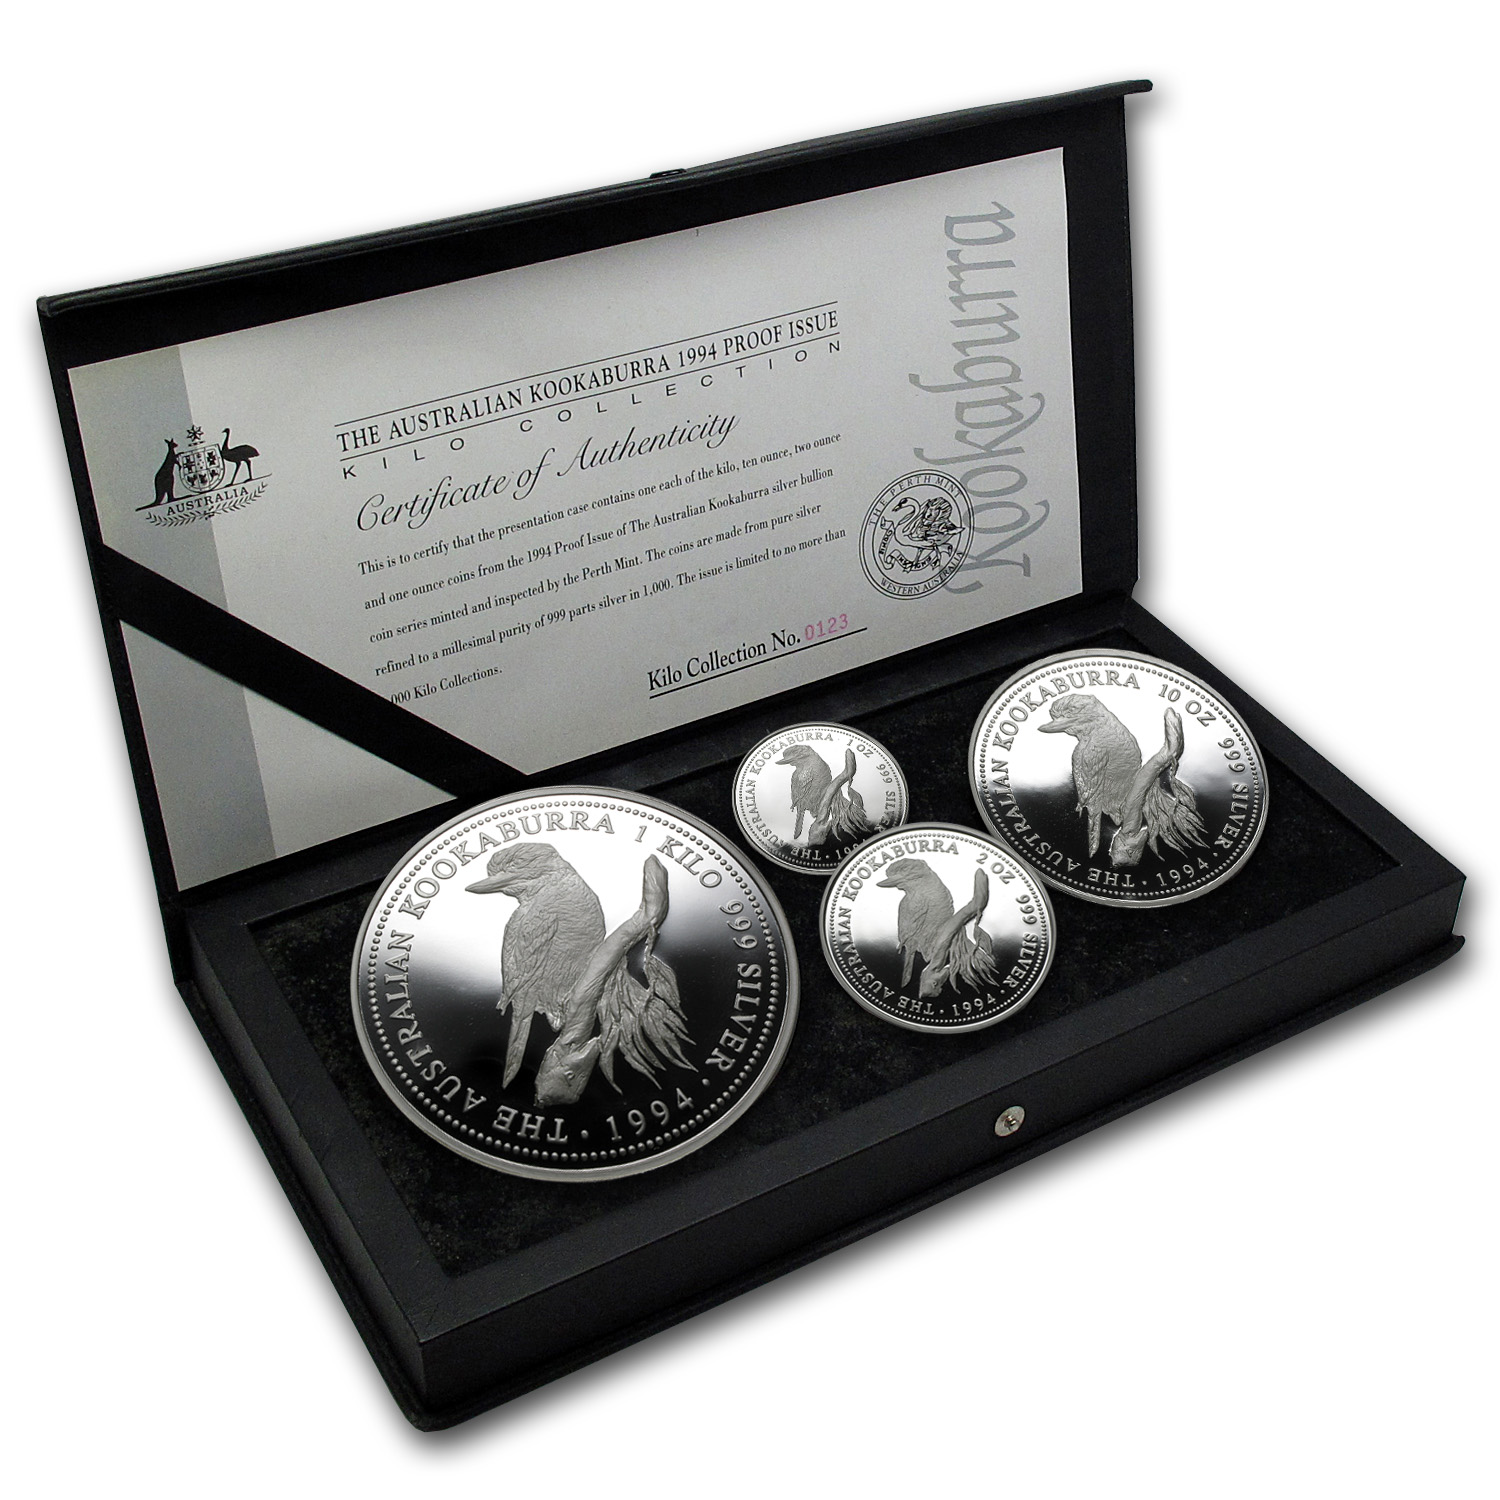 1994 Proof Silver Australian Kookaburra 4 Coin Set